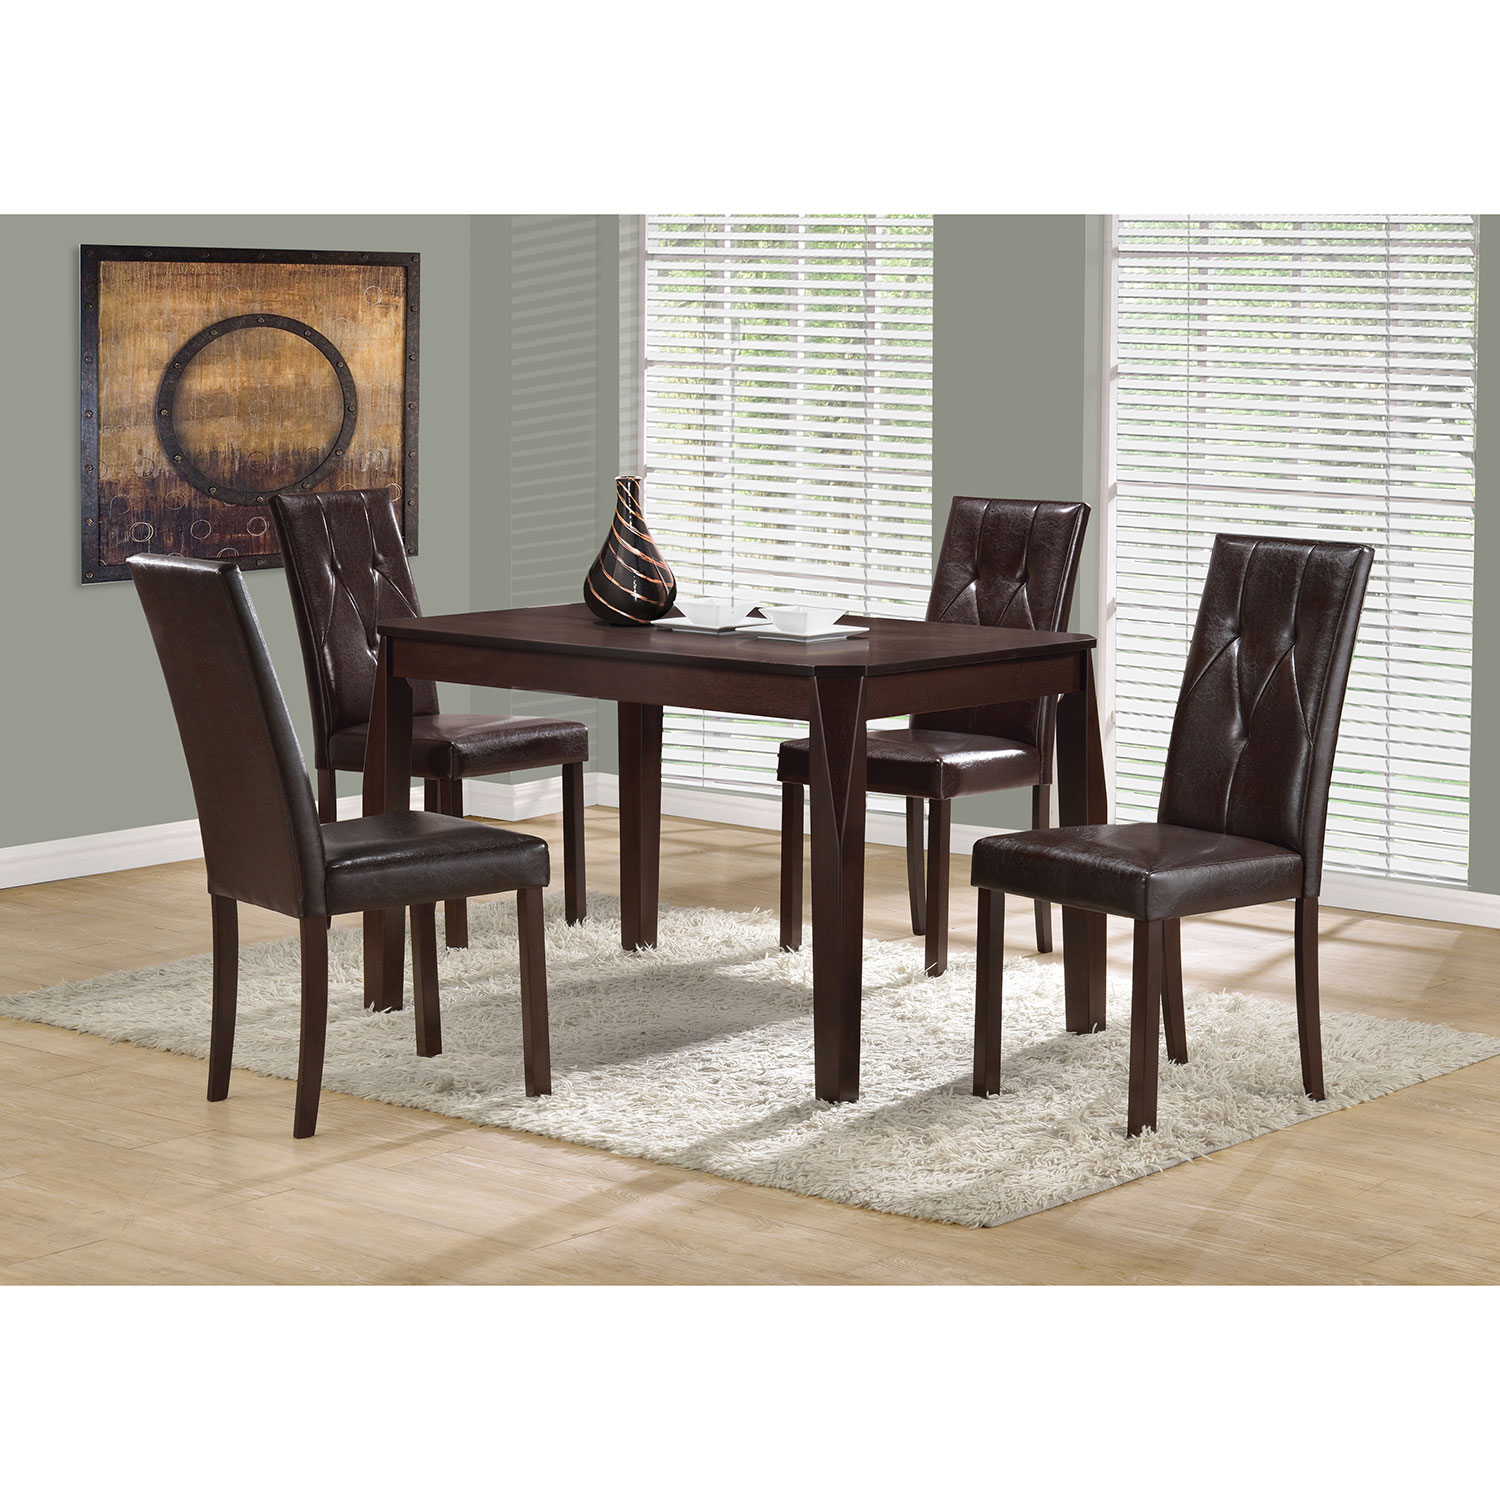 contemporary rectangular dining table  cappuccino  dining tables  - contemporary rectangular dining table  cappuccino  dining tables  bestbuy canada